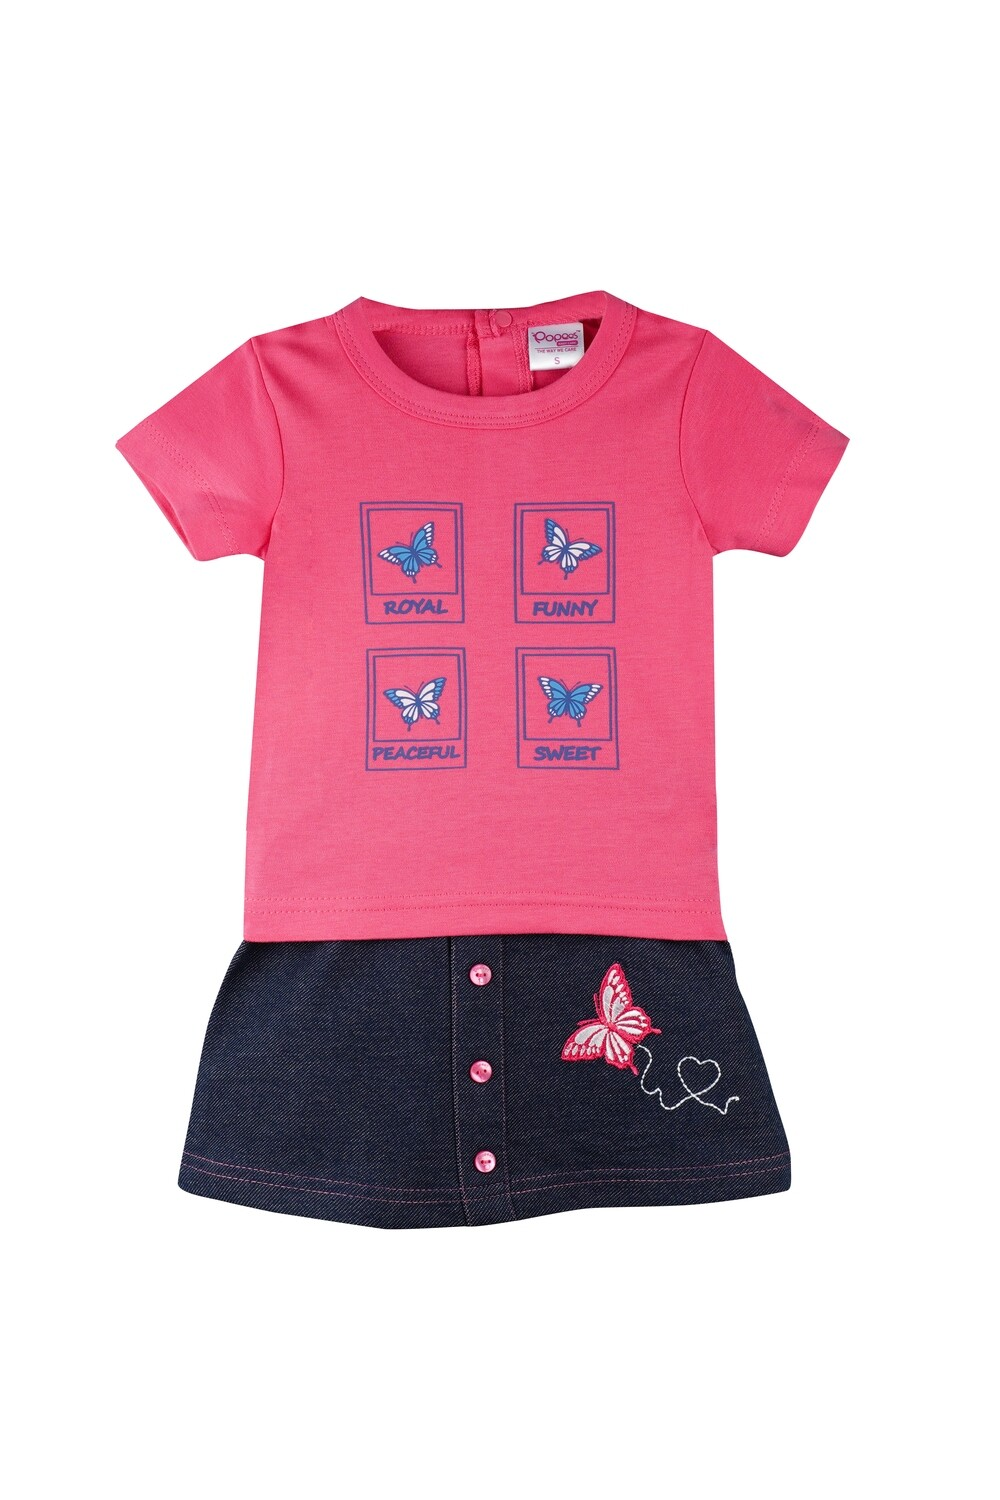 Story Fuchsia Half Sleeves Round Neck T-Shirt with Butterfly Embroidered Skirt for Girls